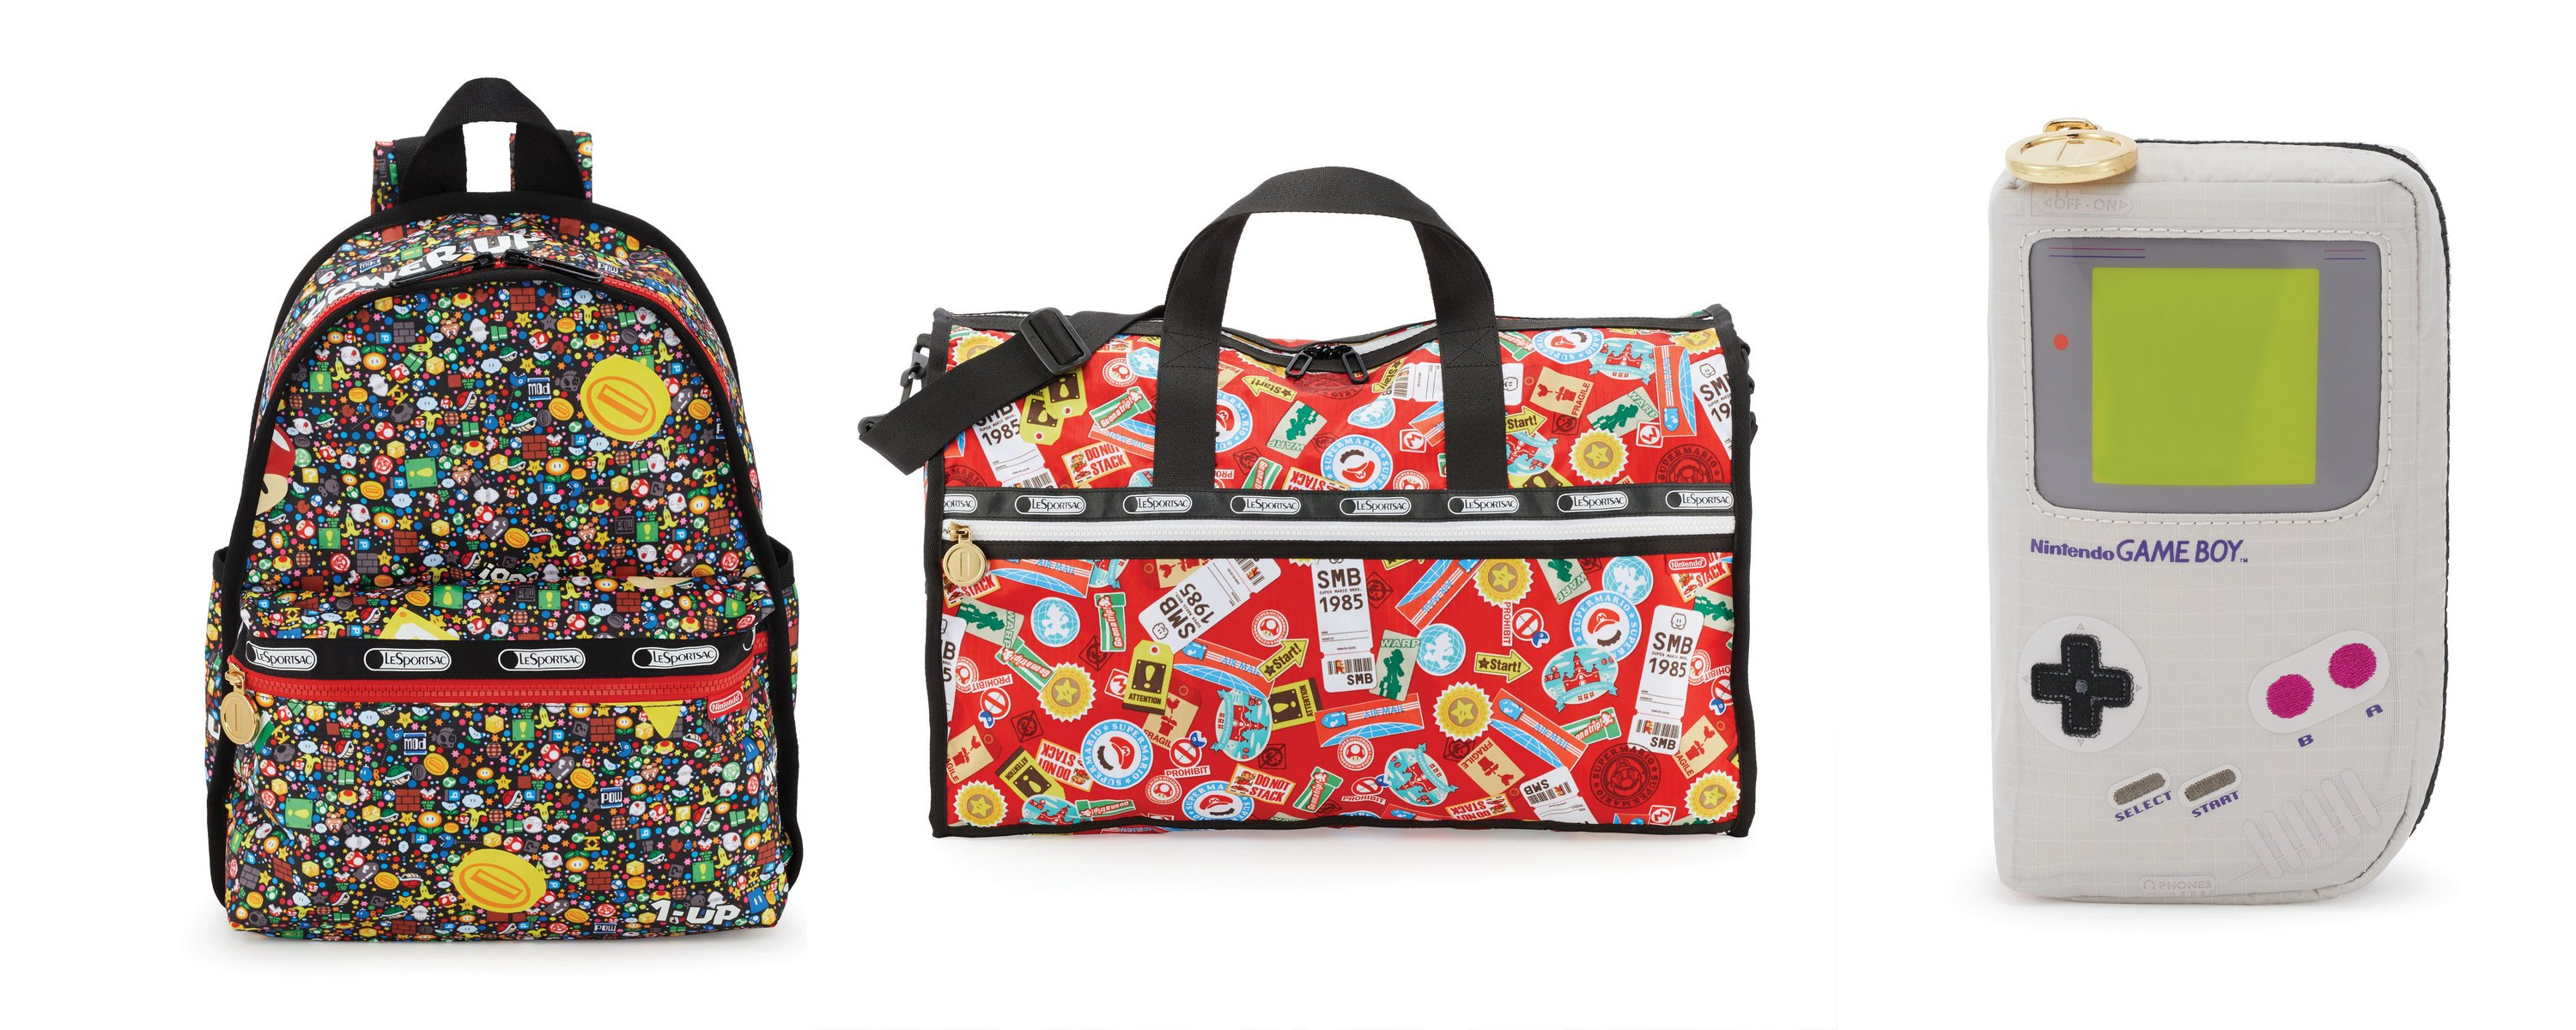 Here are some loud Nintendo bags from LeSportsac screenshot